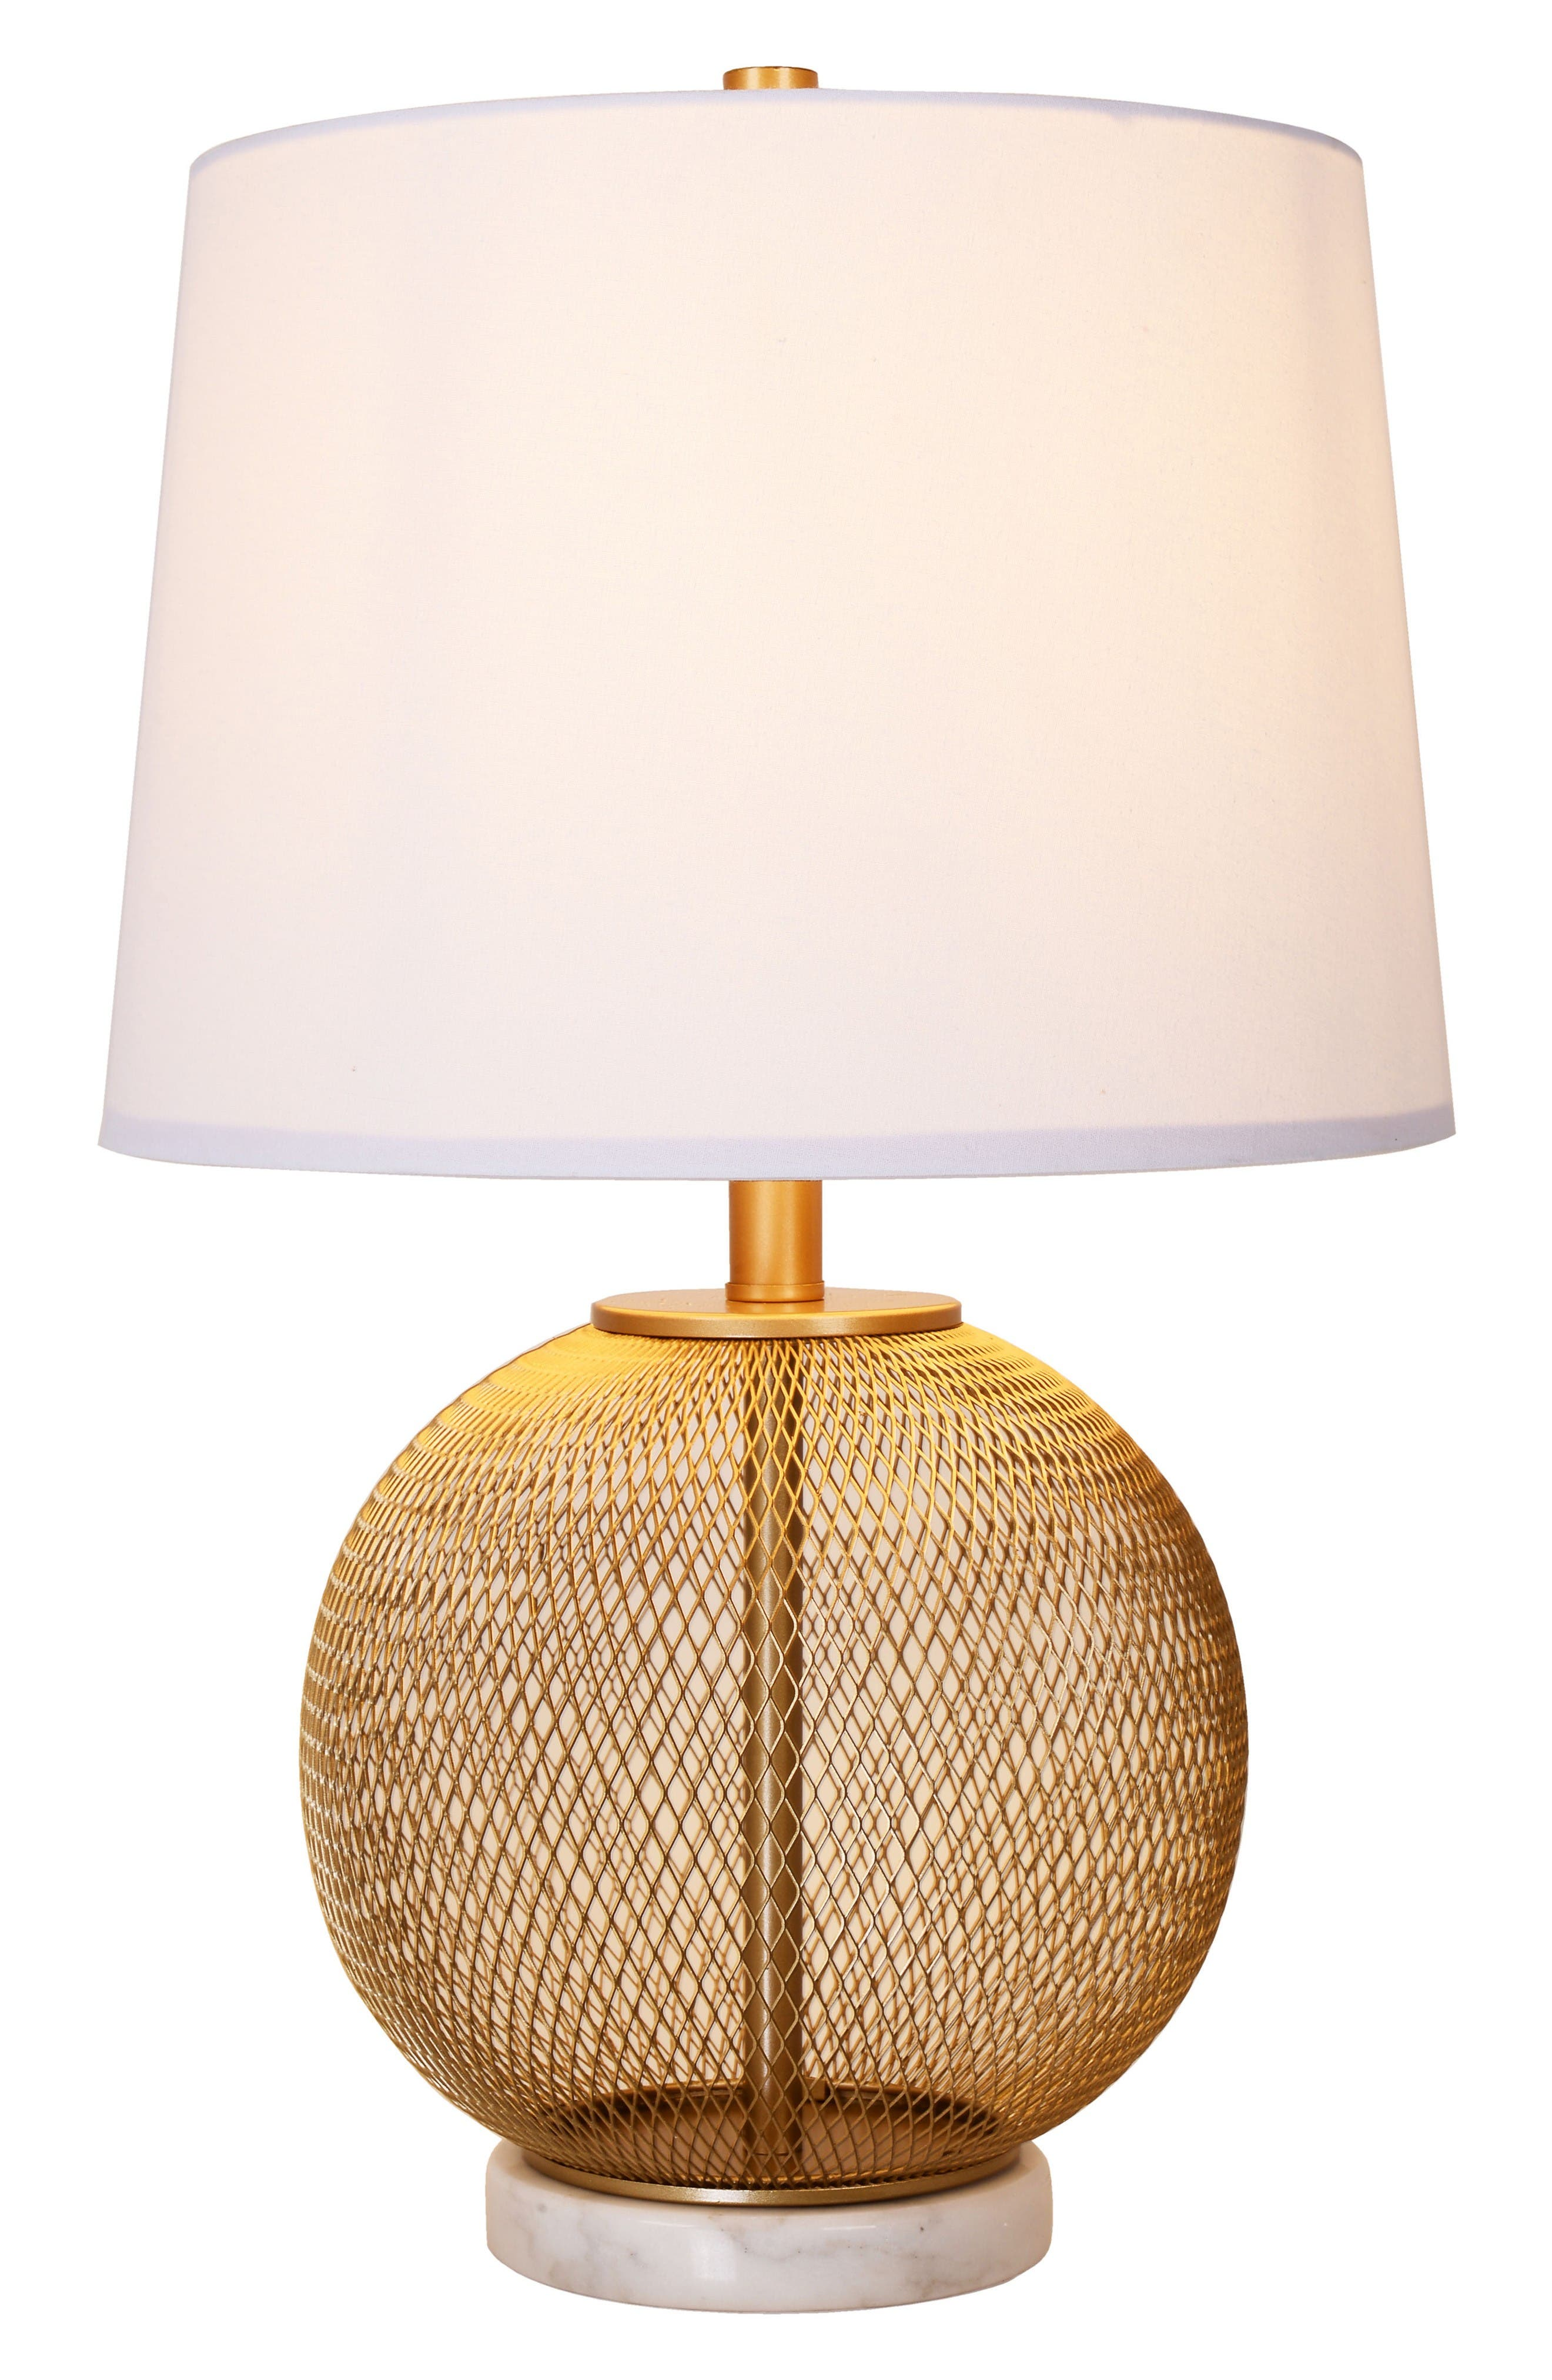 cupcakes & cashmere Mesh & Marble Table Lamp